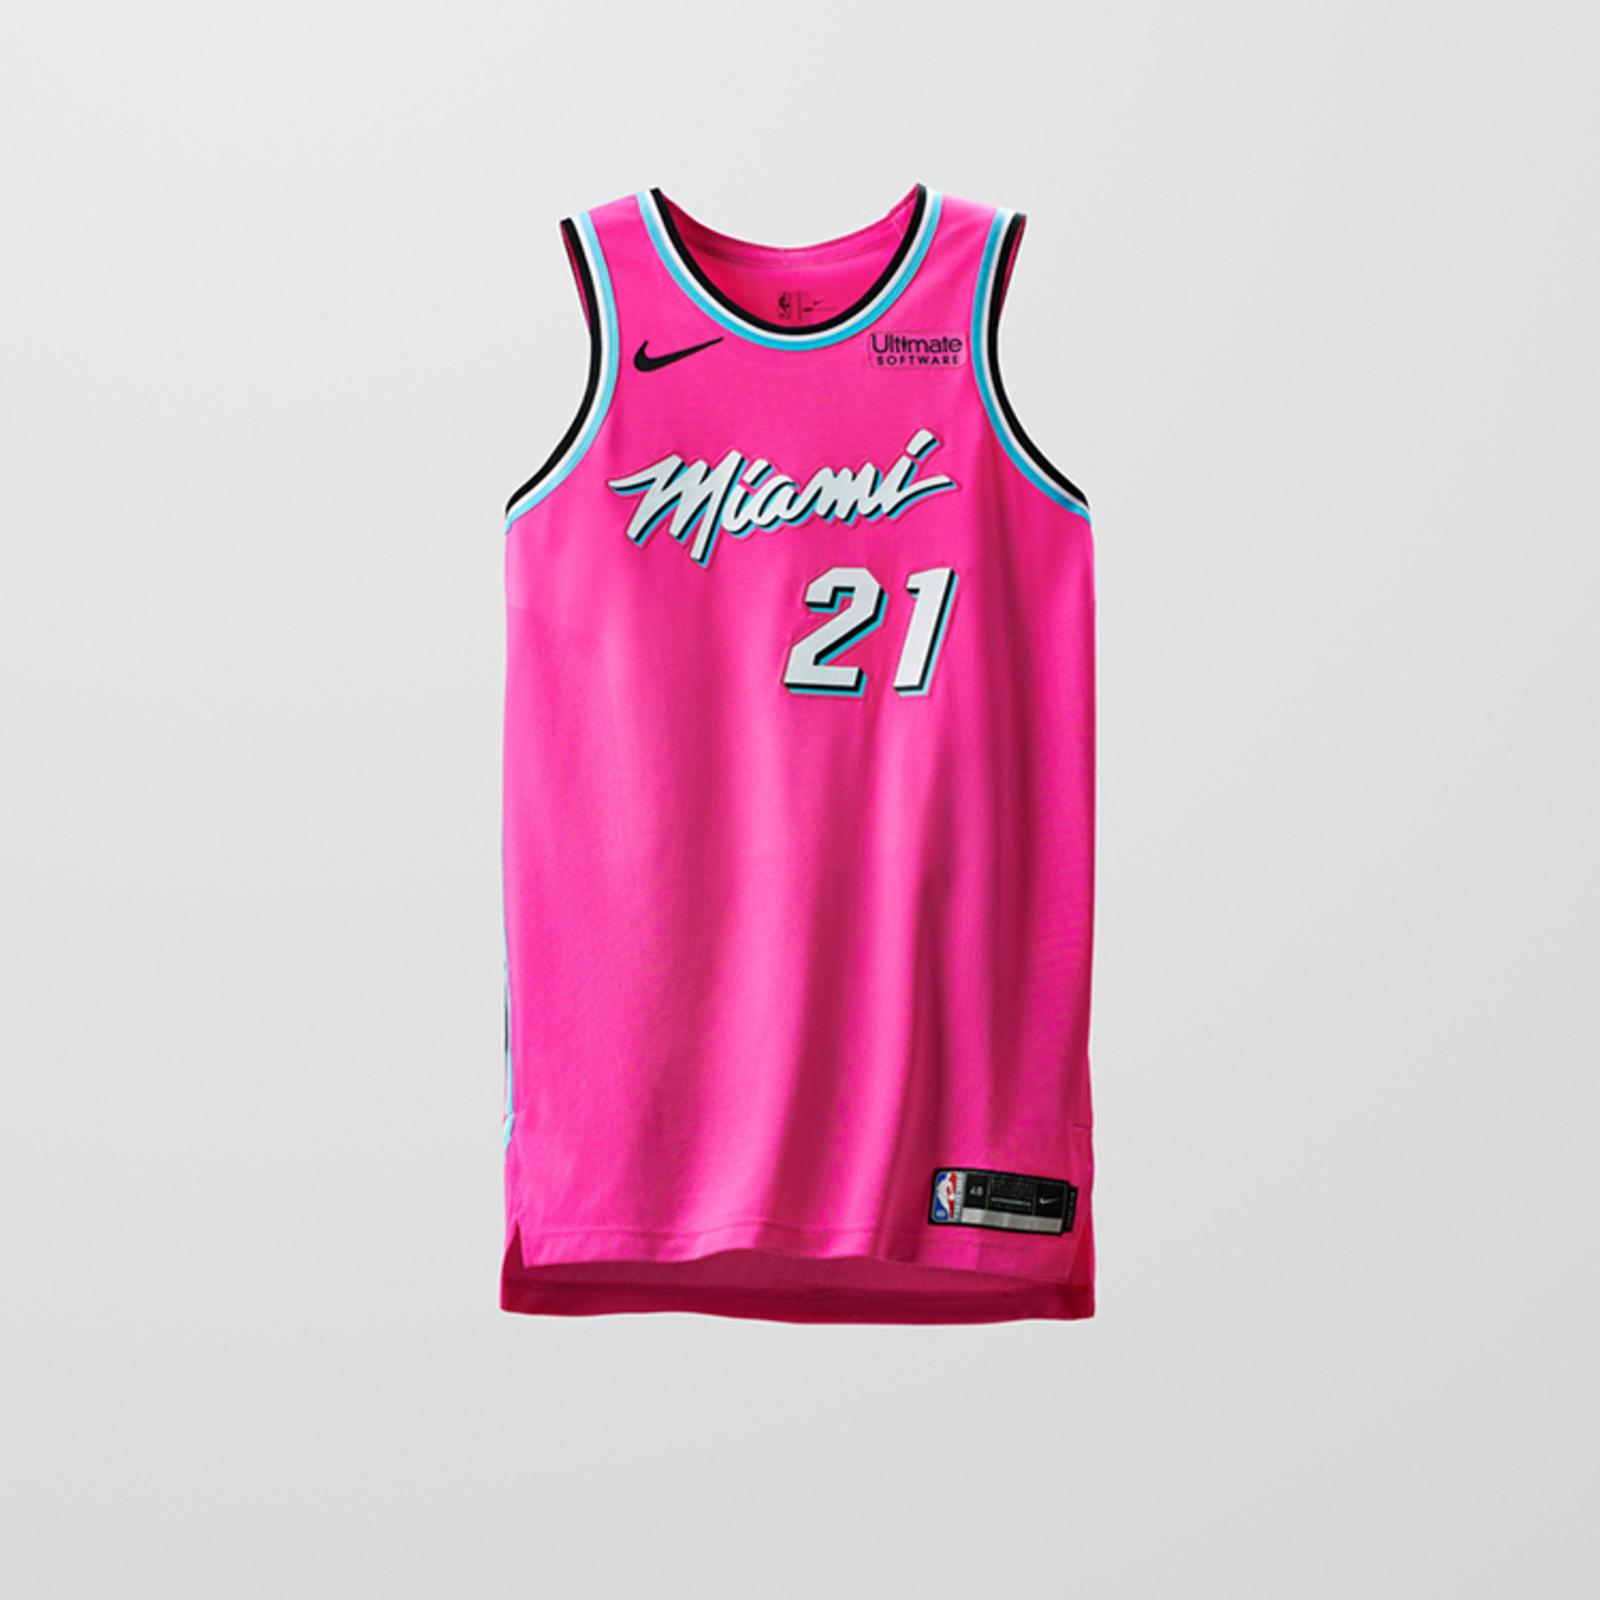 02d09debdf5 The energy of South Beach nightlife is front and center on Miami s Earned  Edition uniform with its neon pink base.